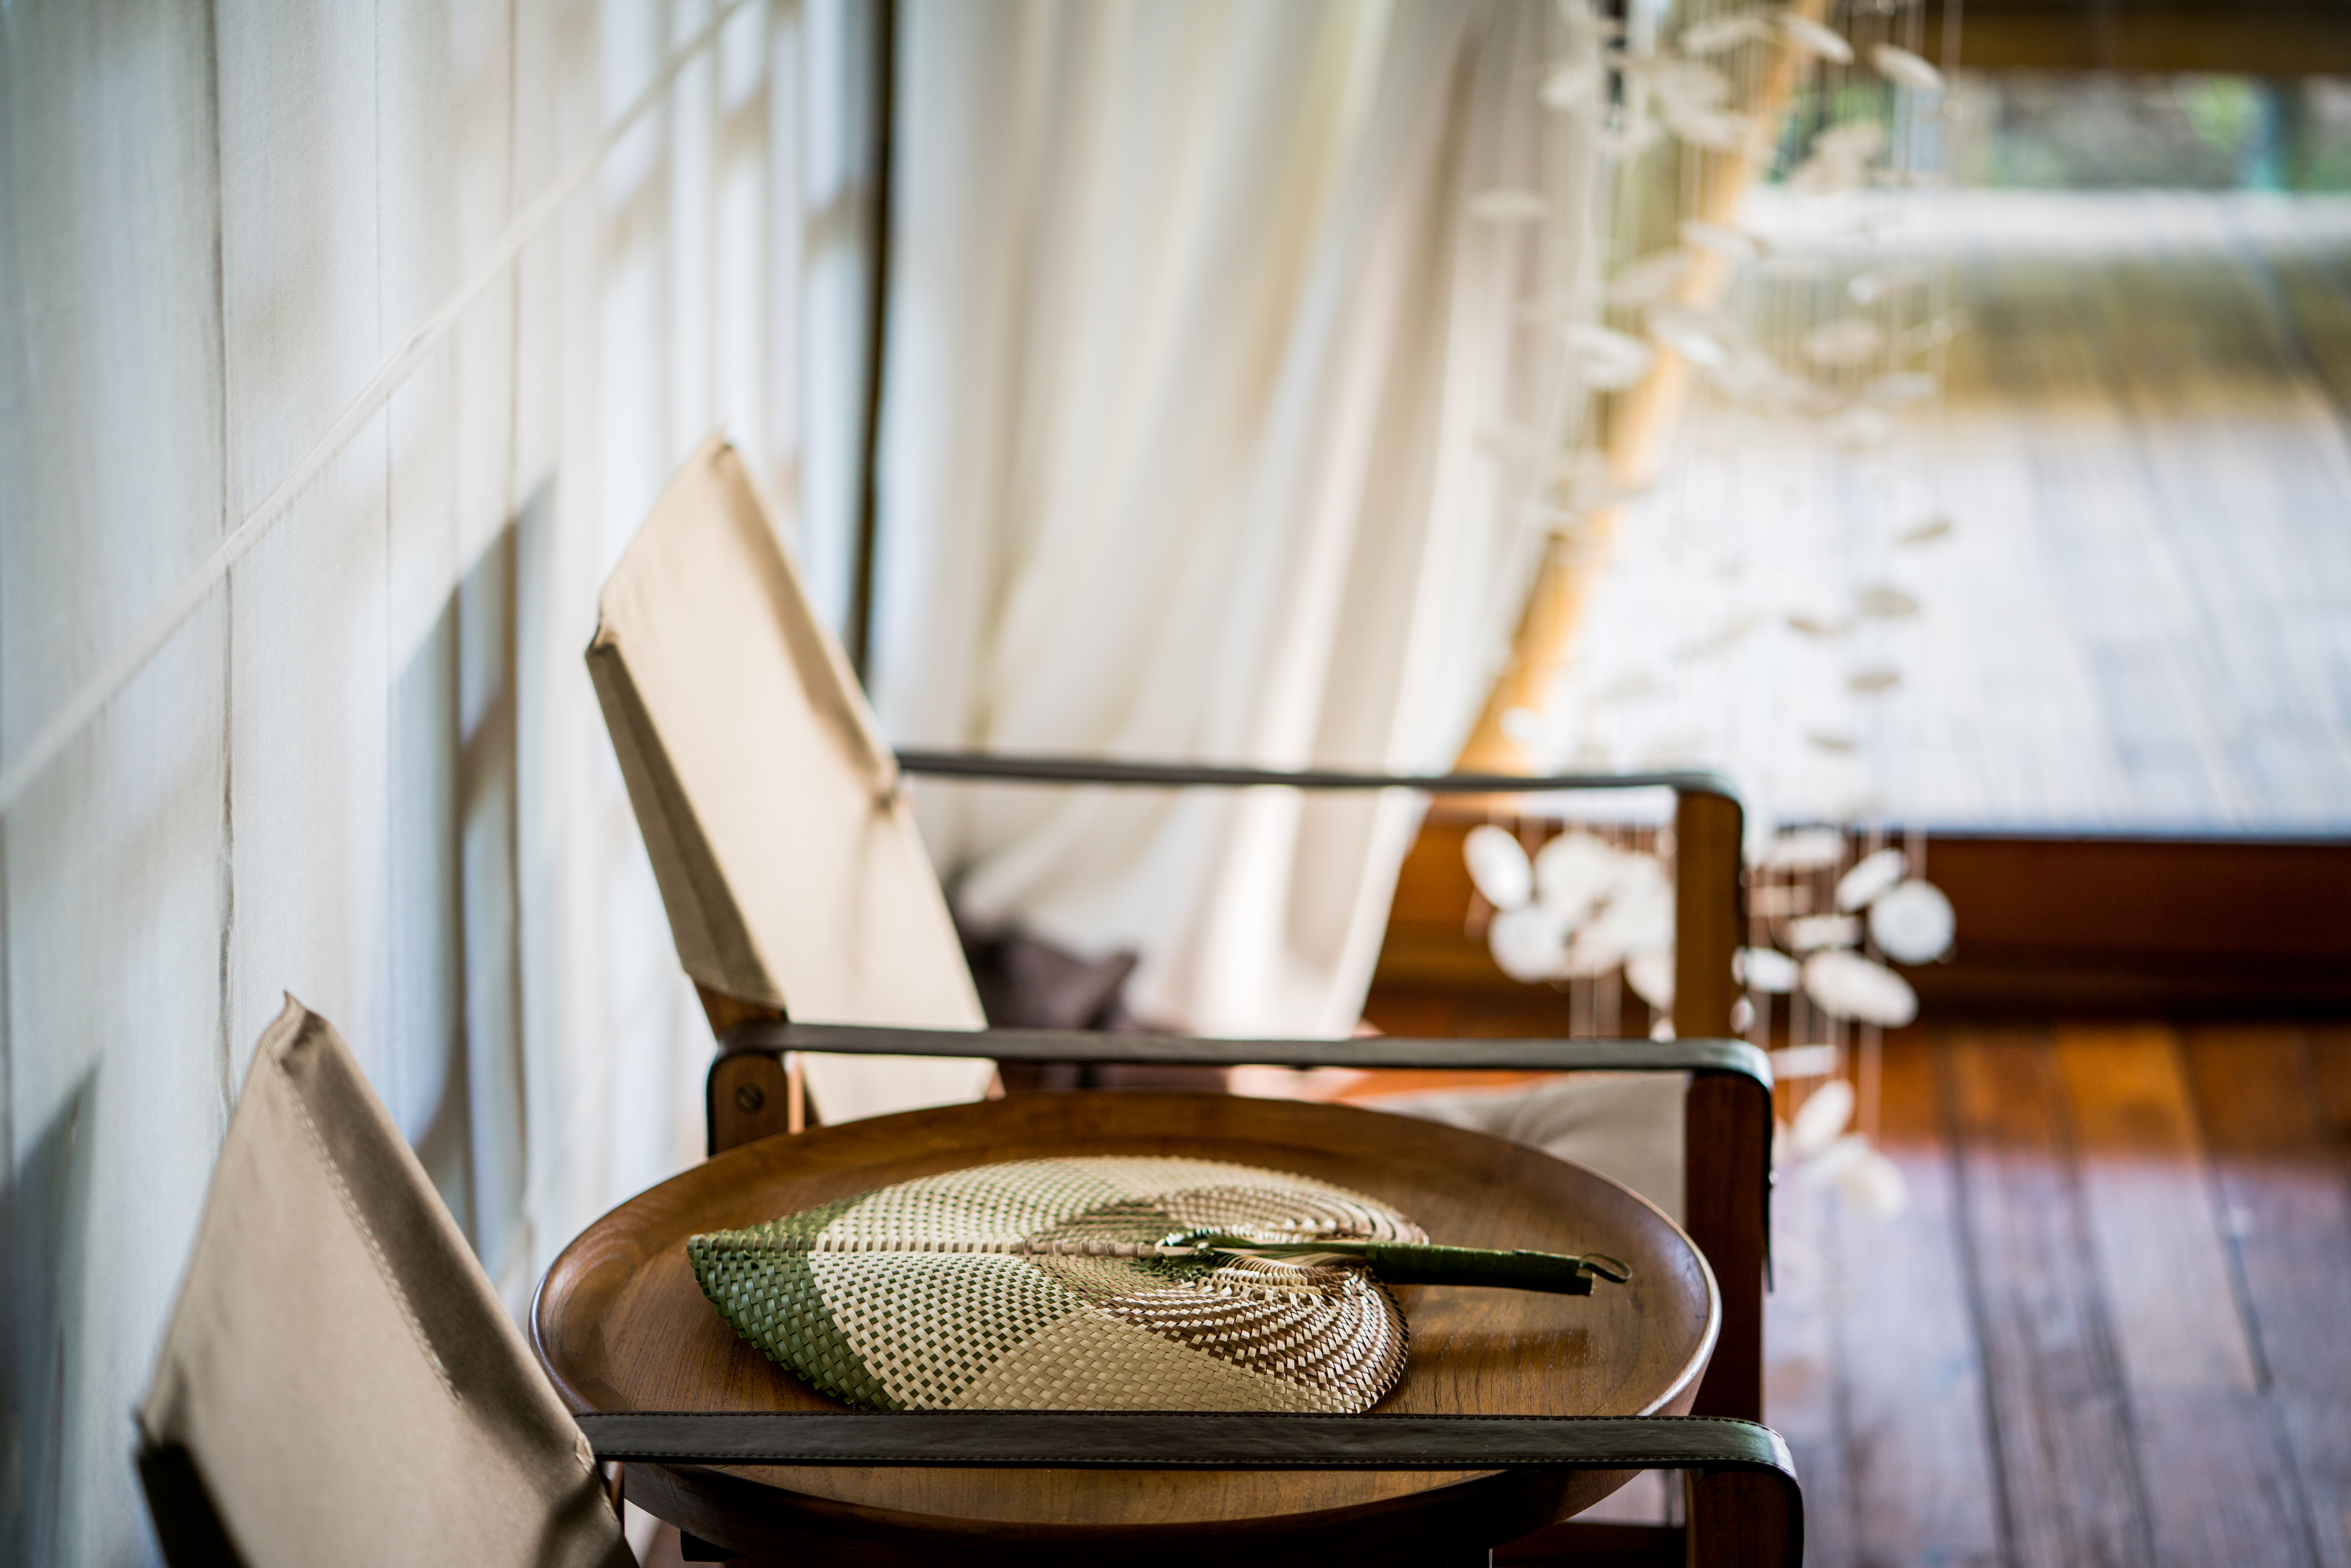 green_brown_rattan_hand_fan_on_wooden_table_arm_chairs_iwith_white_curtain_behind_blurred_jellyfish_tentacles_light_beach_suite